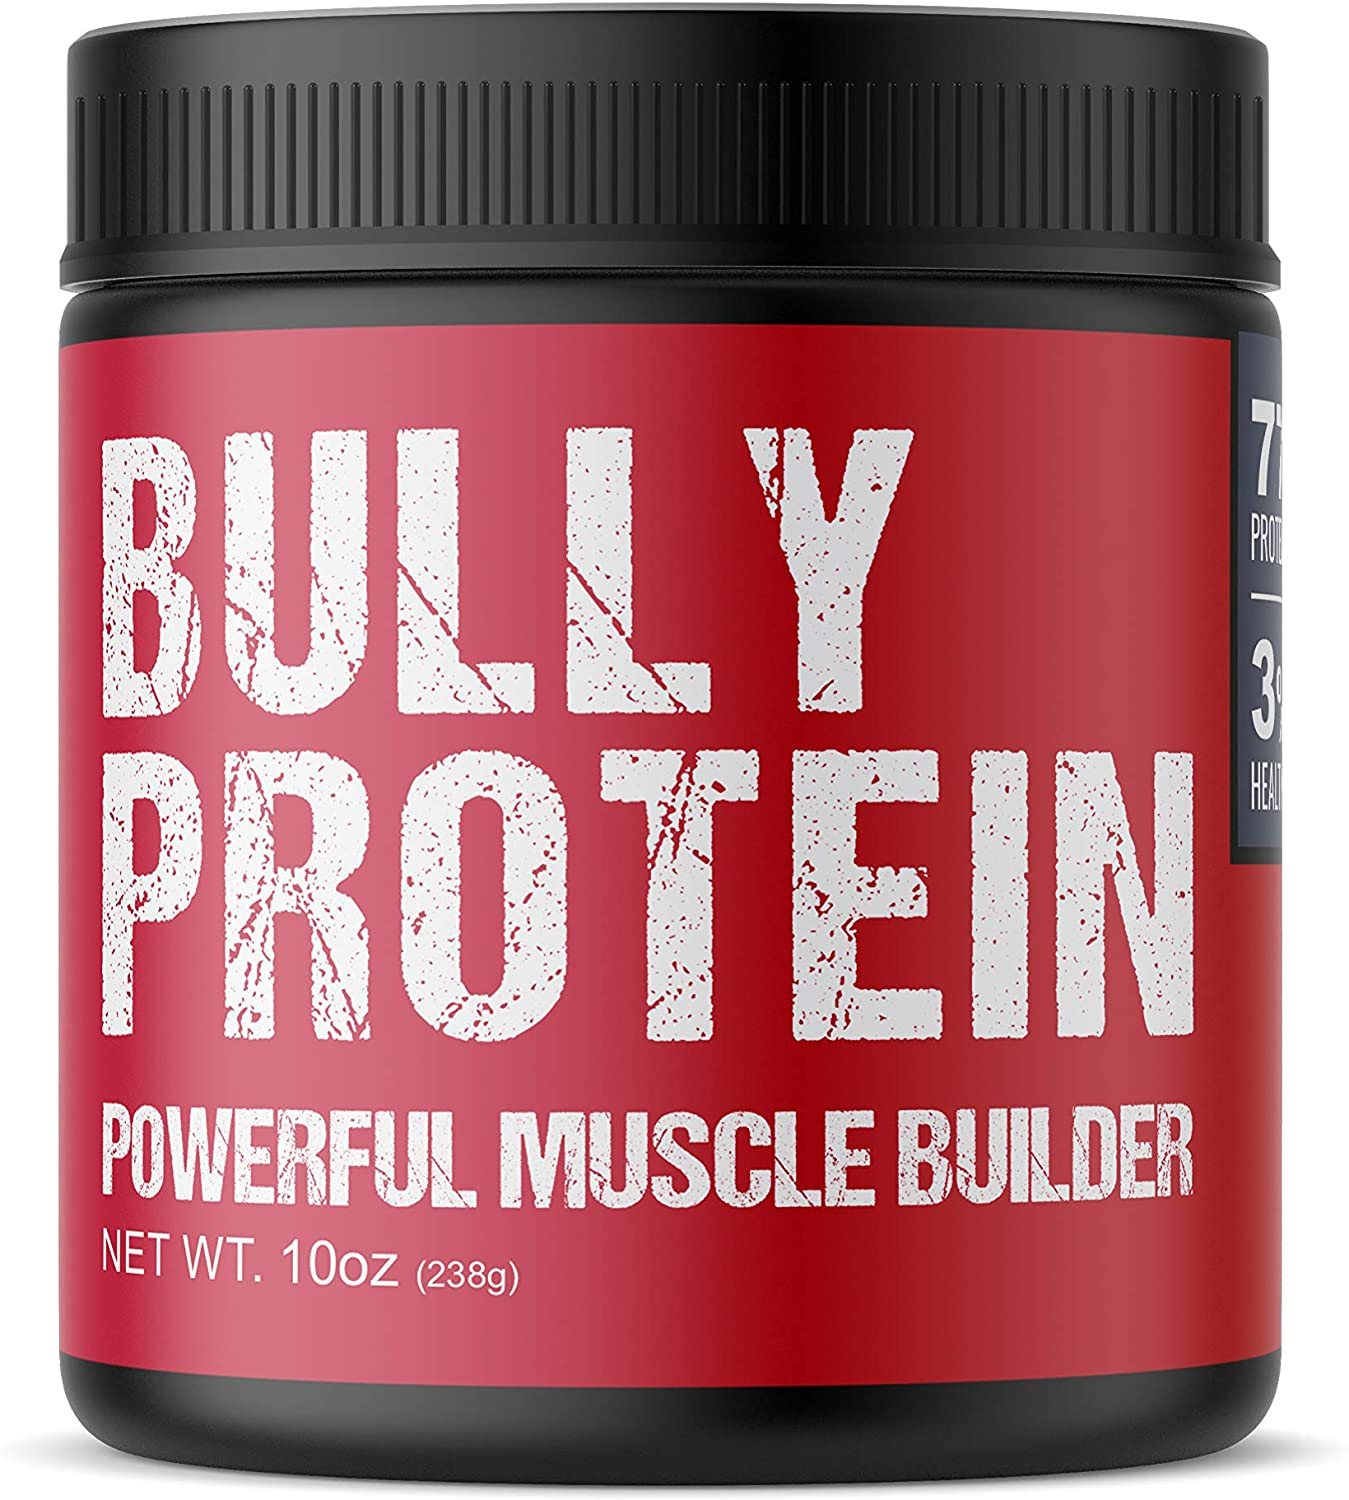 PetExcellent Bully Muscle Builder   Dog Protein Powder   Weight Gainer for Your Bully, Pitbull, Frenchies, or More   283g 60 Servings 30 Day Supply